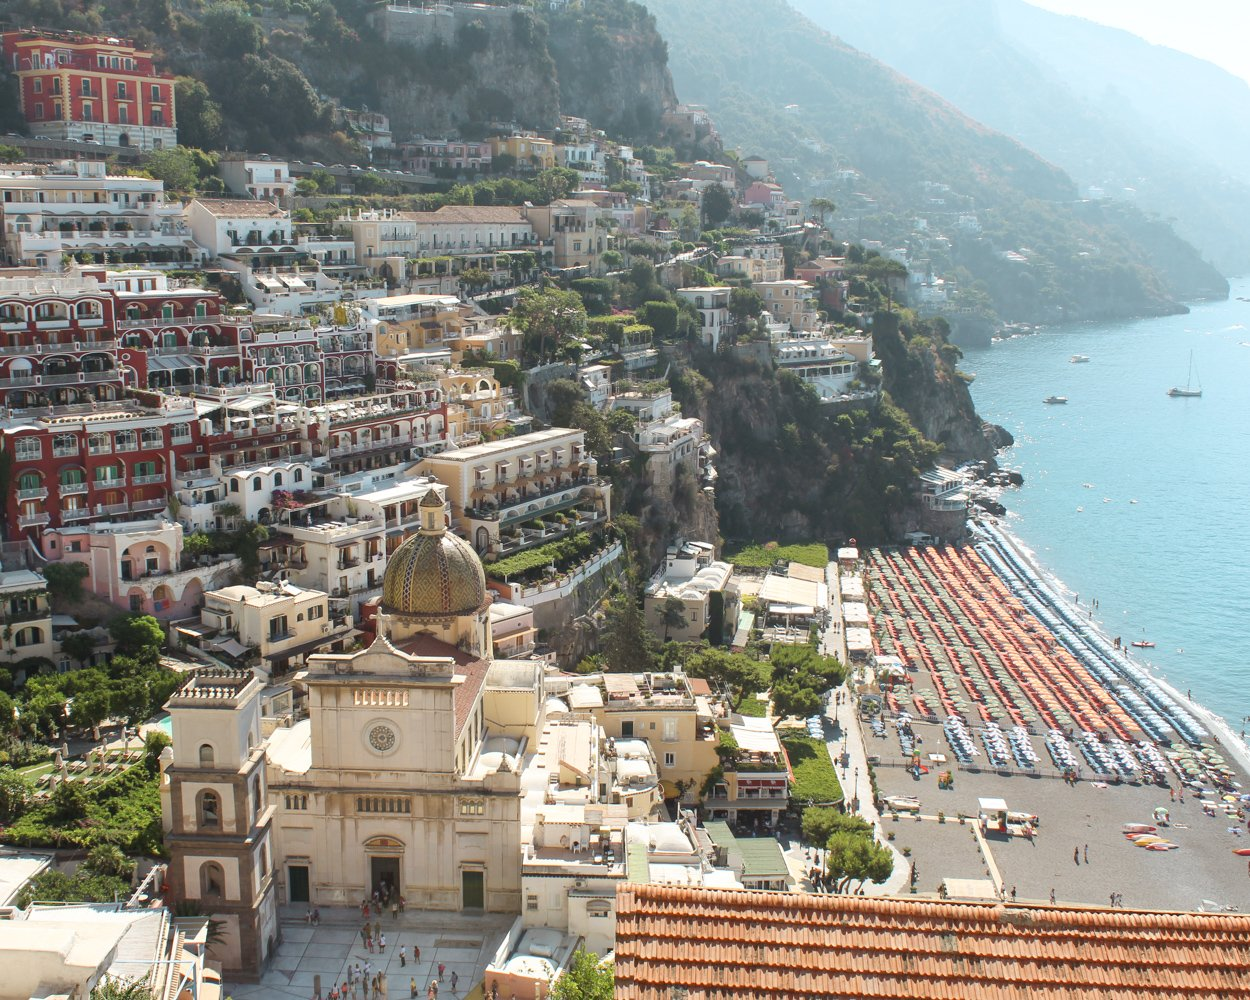 Positano Travel Guide